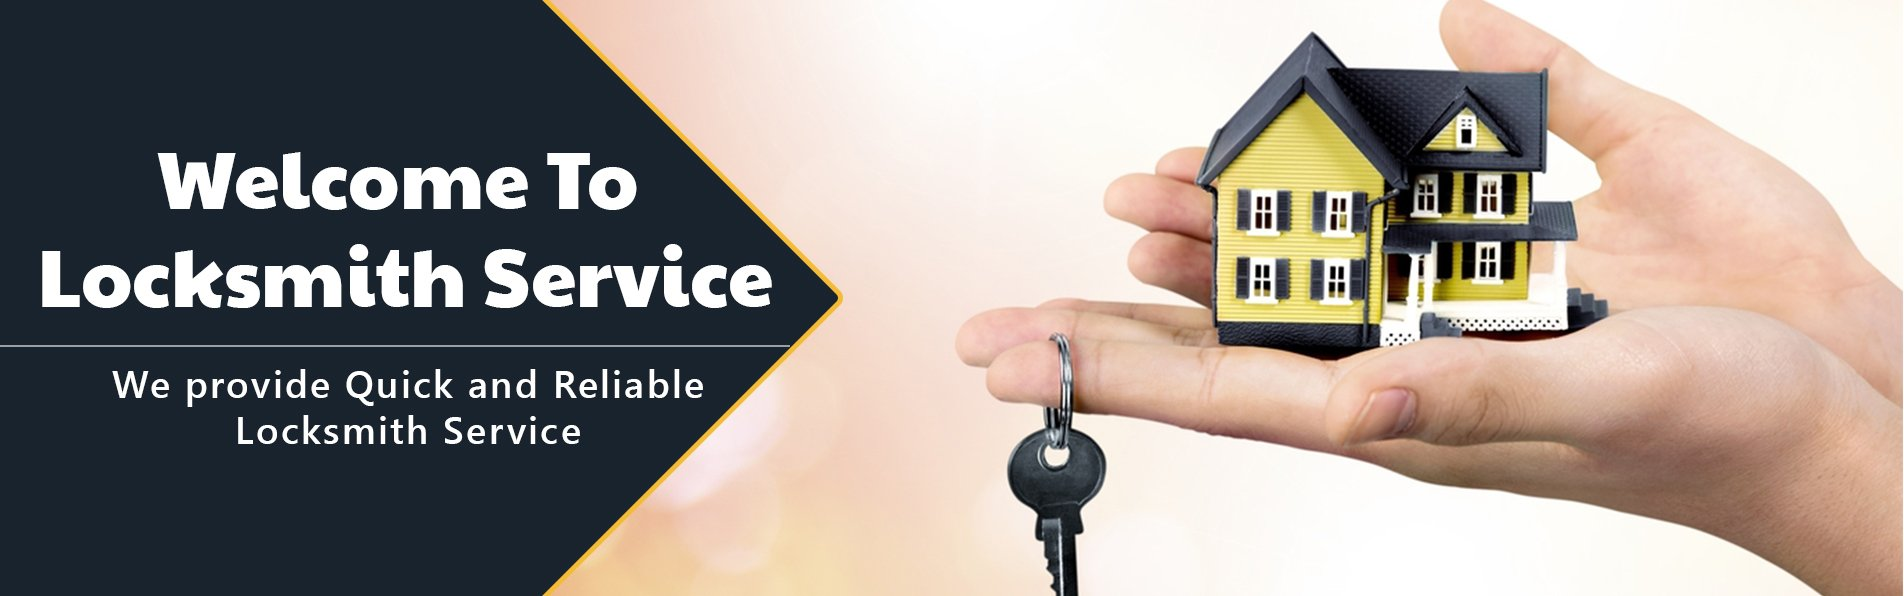 Northrop VA Locksmith Store, Northrop, VA 804-977-0627